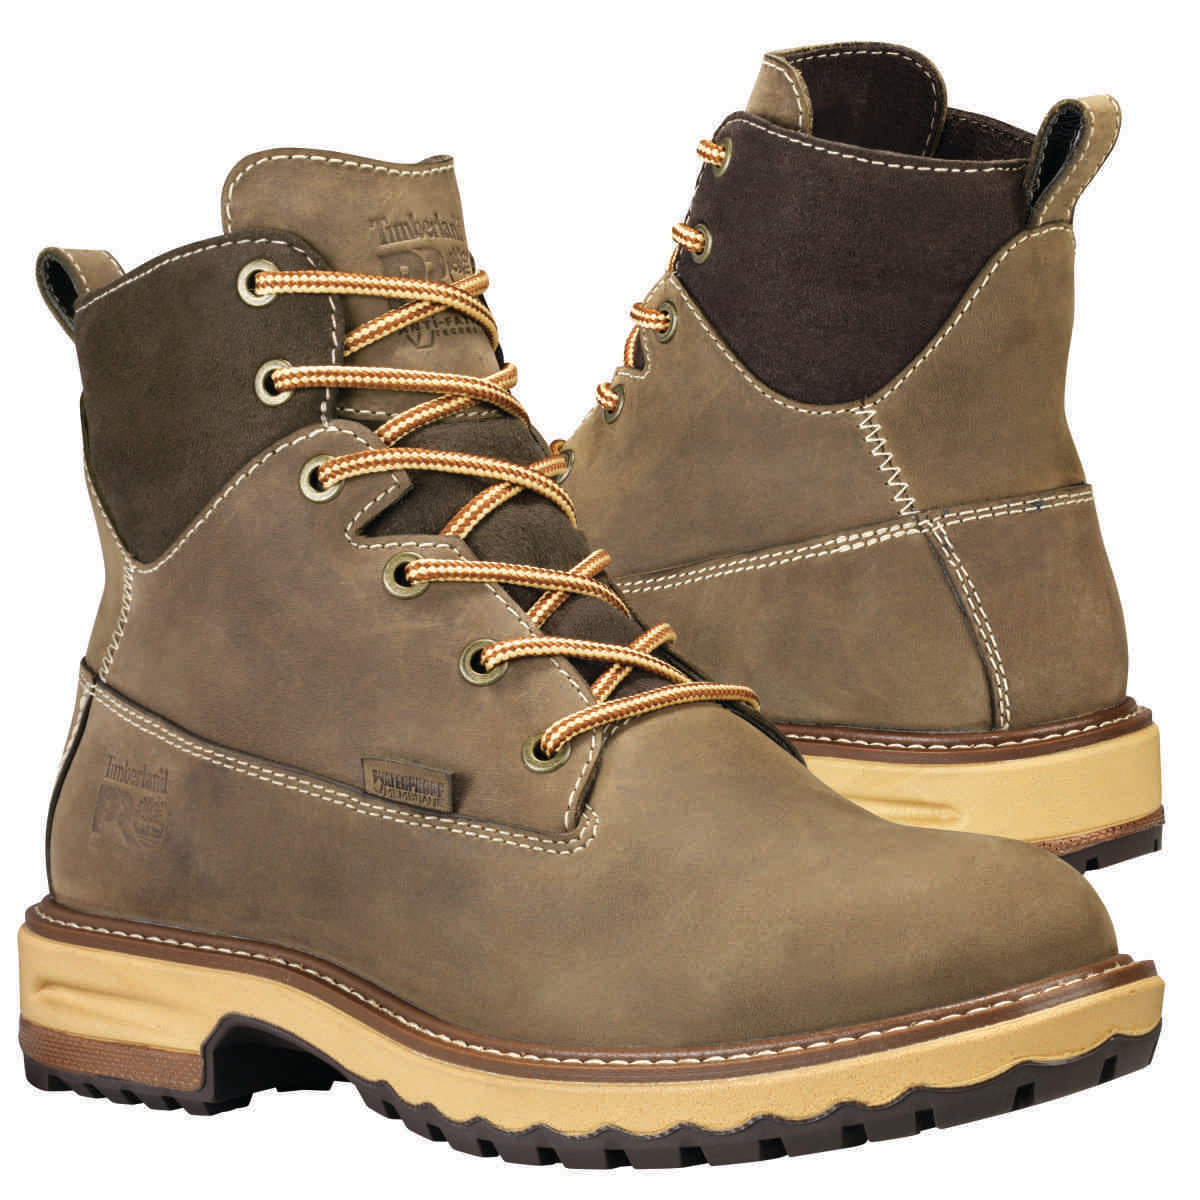 Timberland Hightower Ladies Safety Boots Size 4